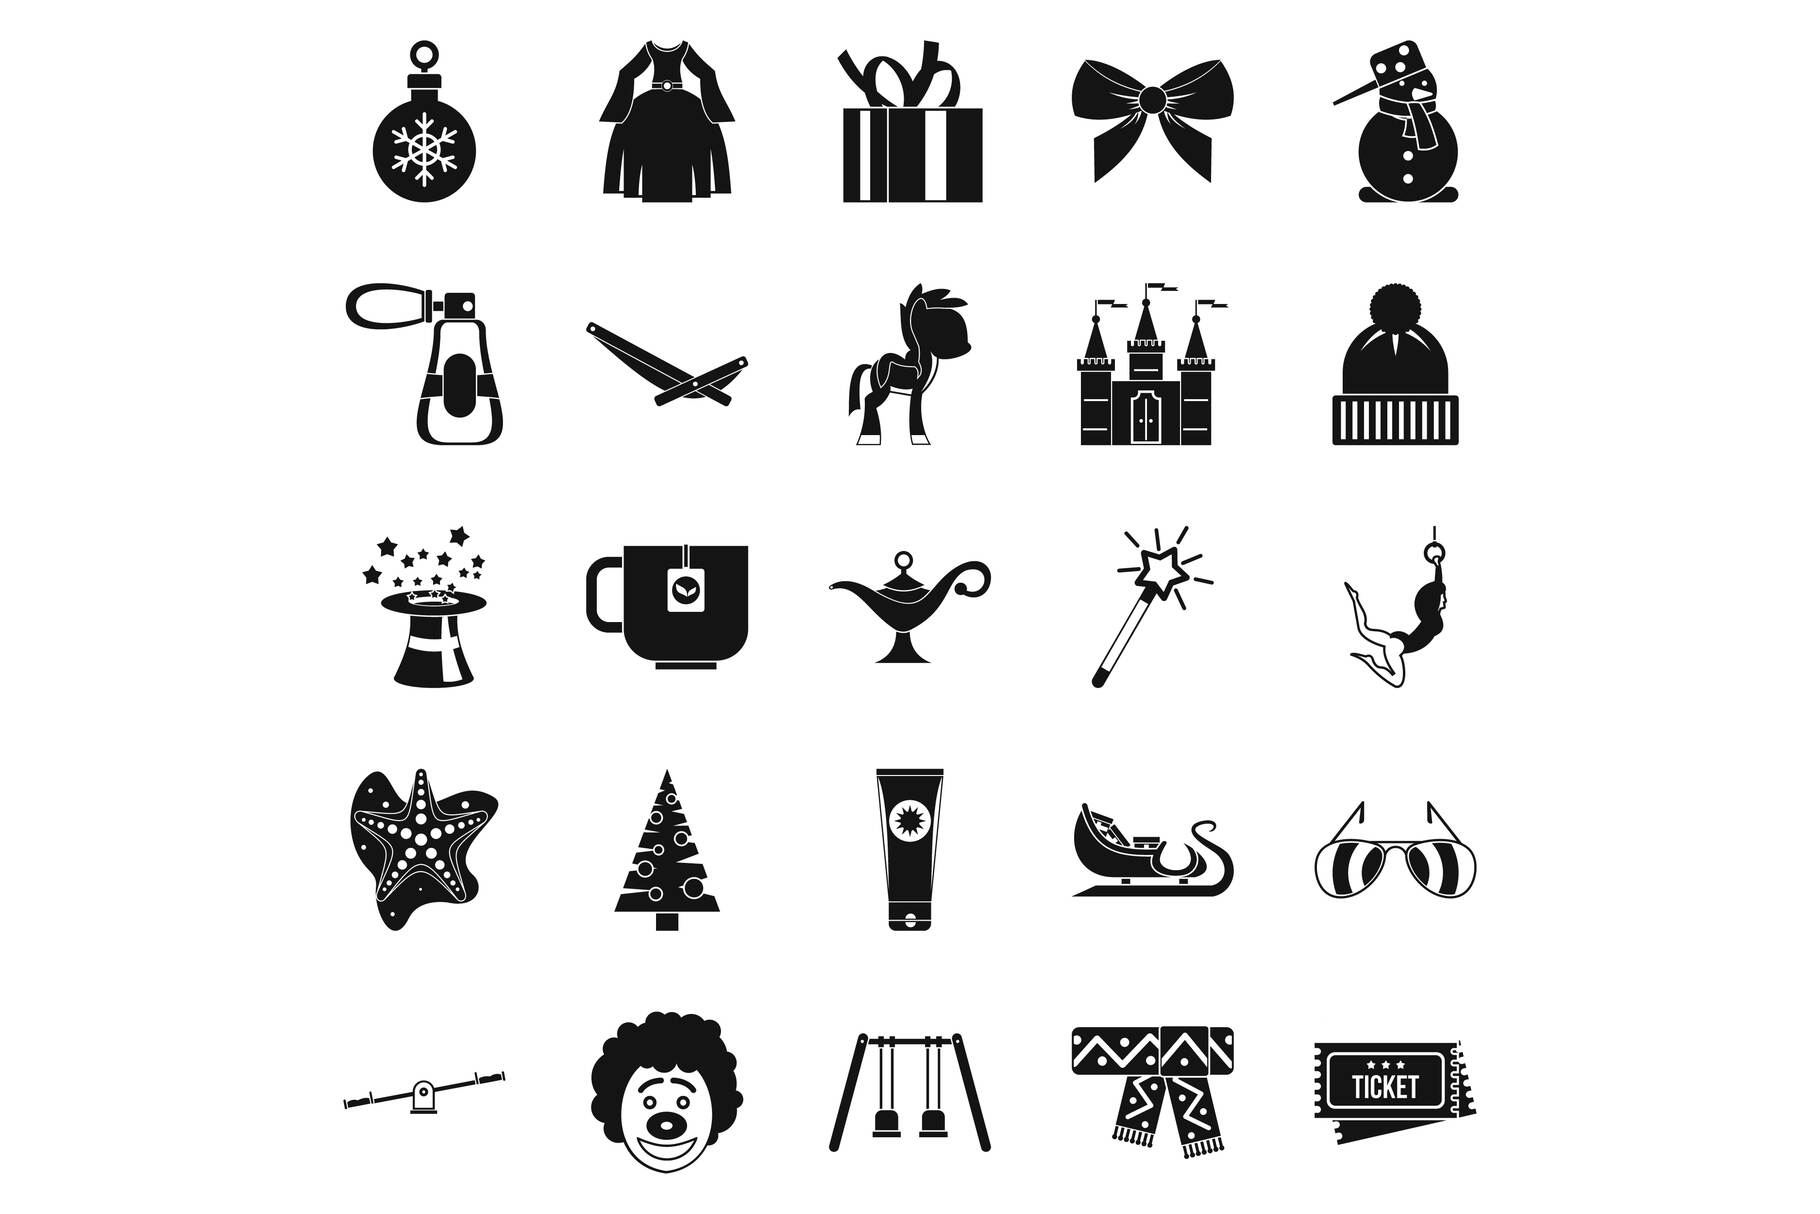 Little people icons set, simple style example image 1